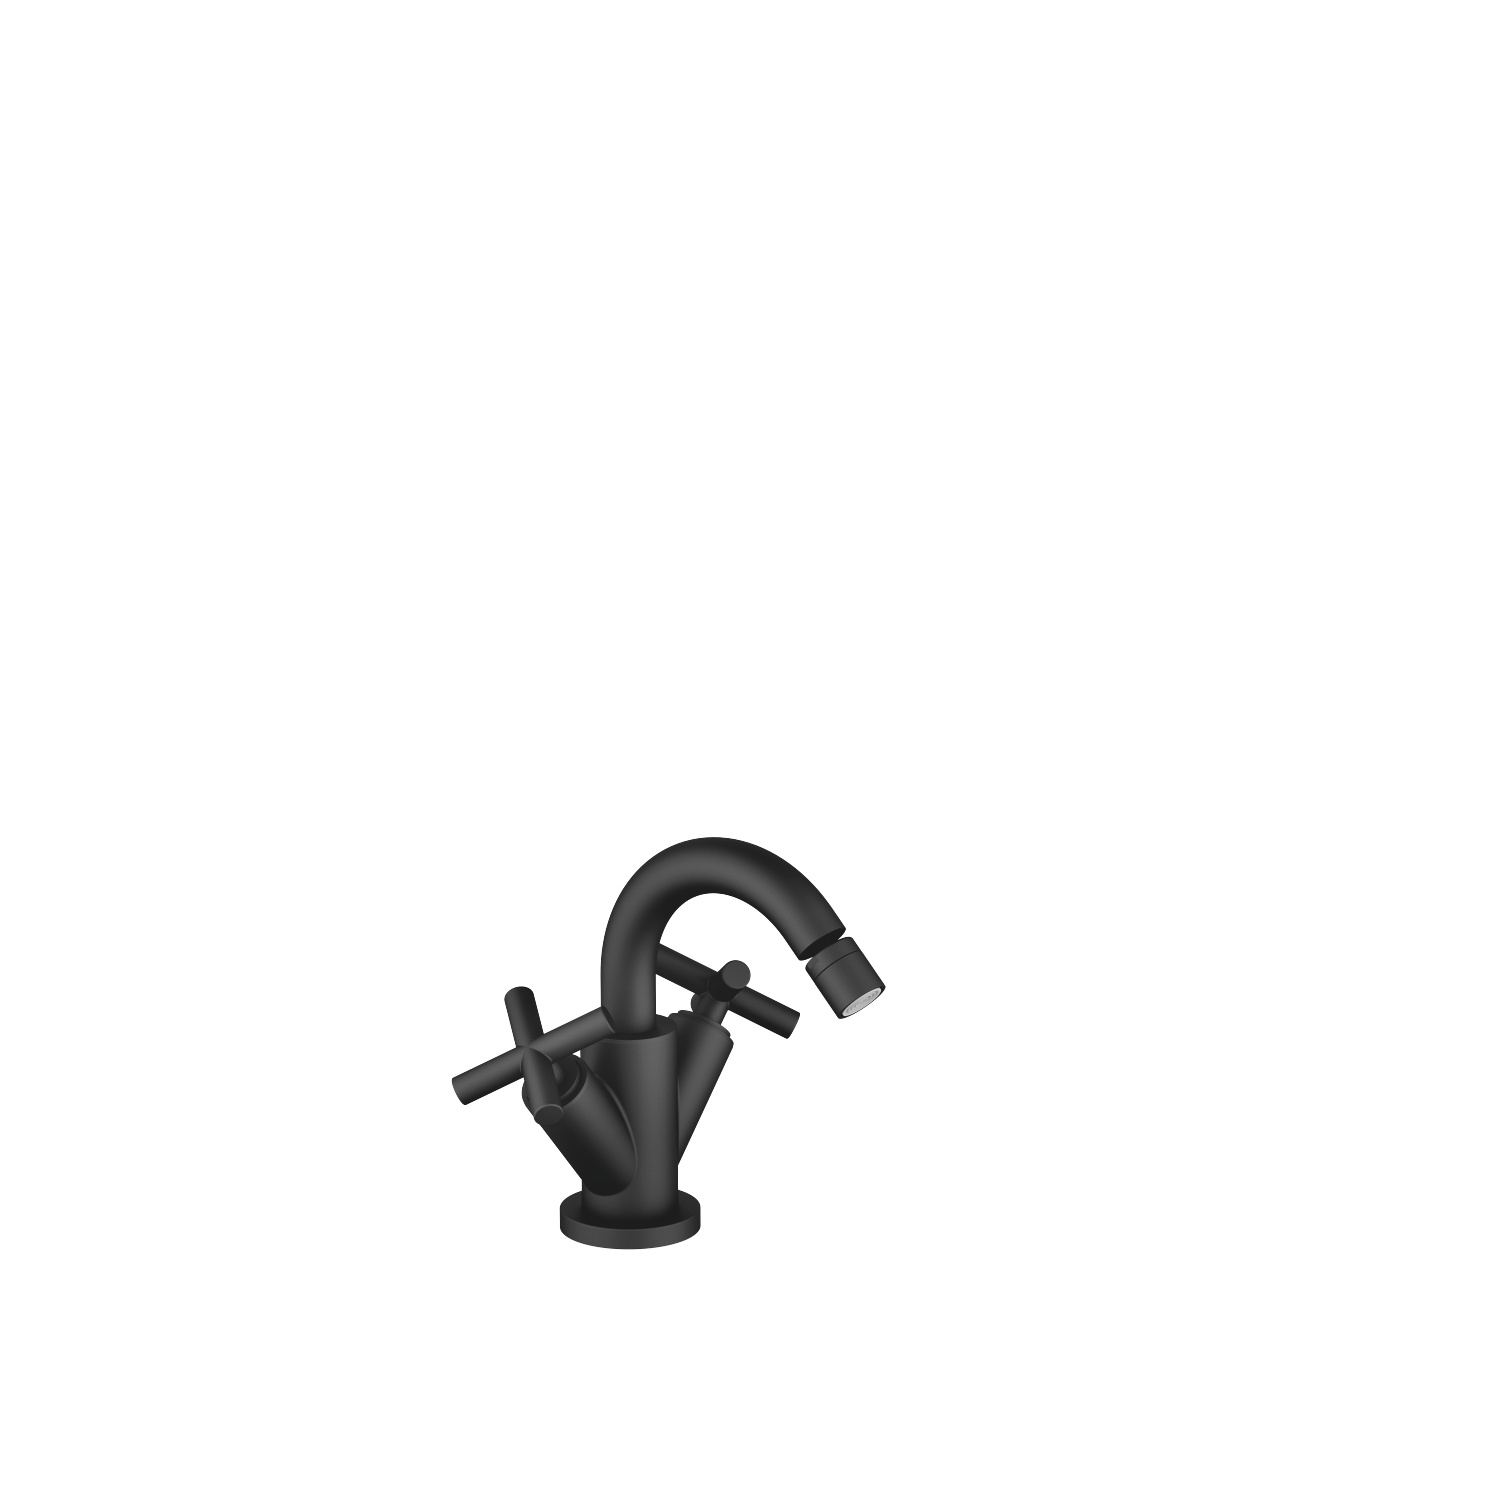 Single-hole bidet mixer with pop-up waste - matt black - 24 510 892-33